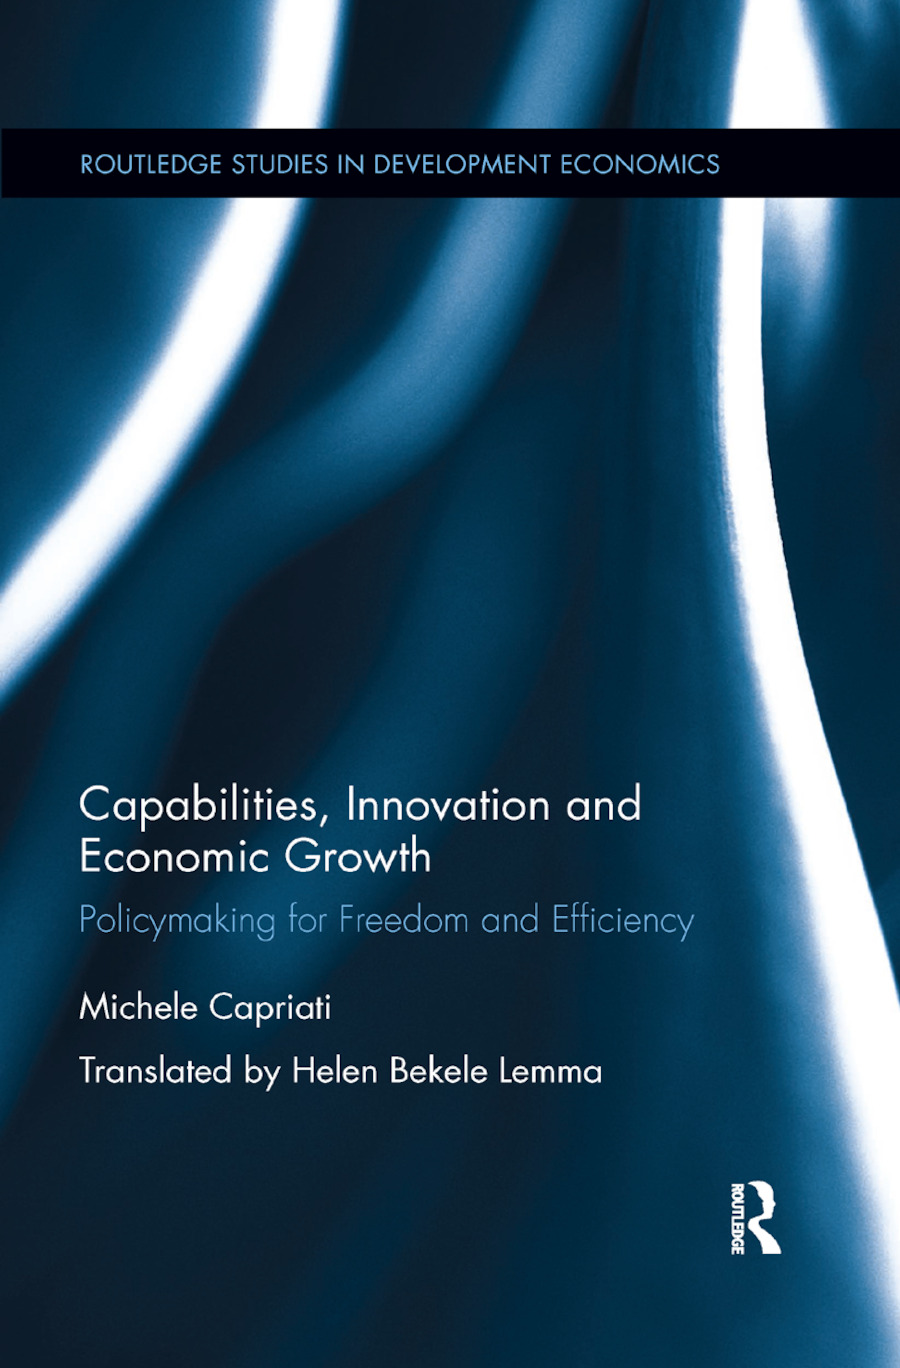 Capabilities, Innovation and Economic Growth